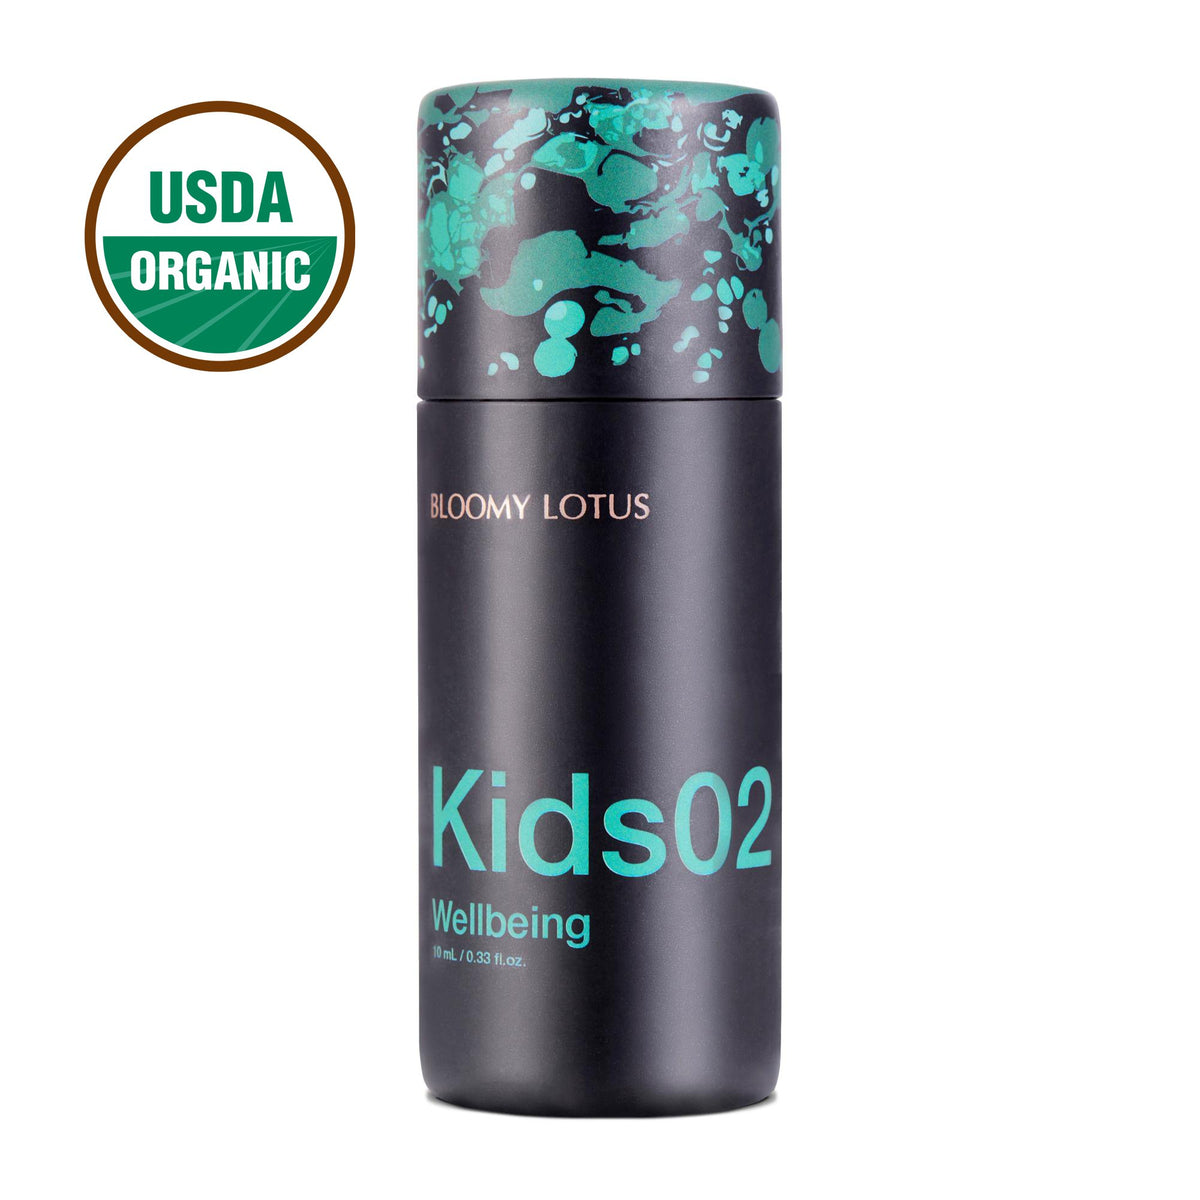 Kids02 Wellbeing Essential Oil, 10 ml